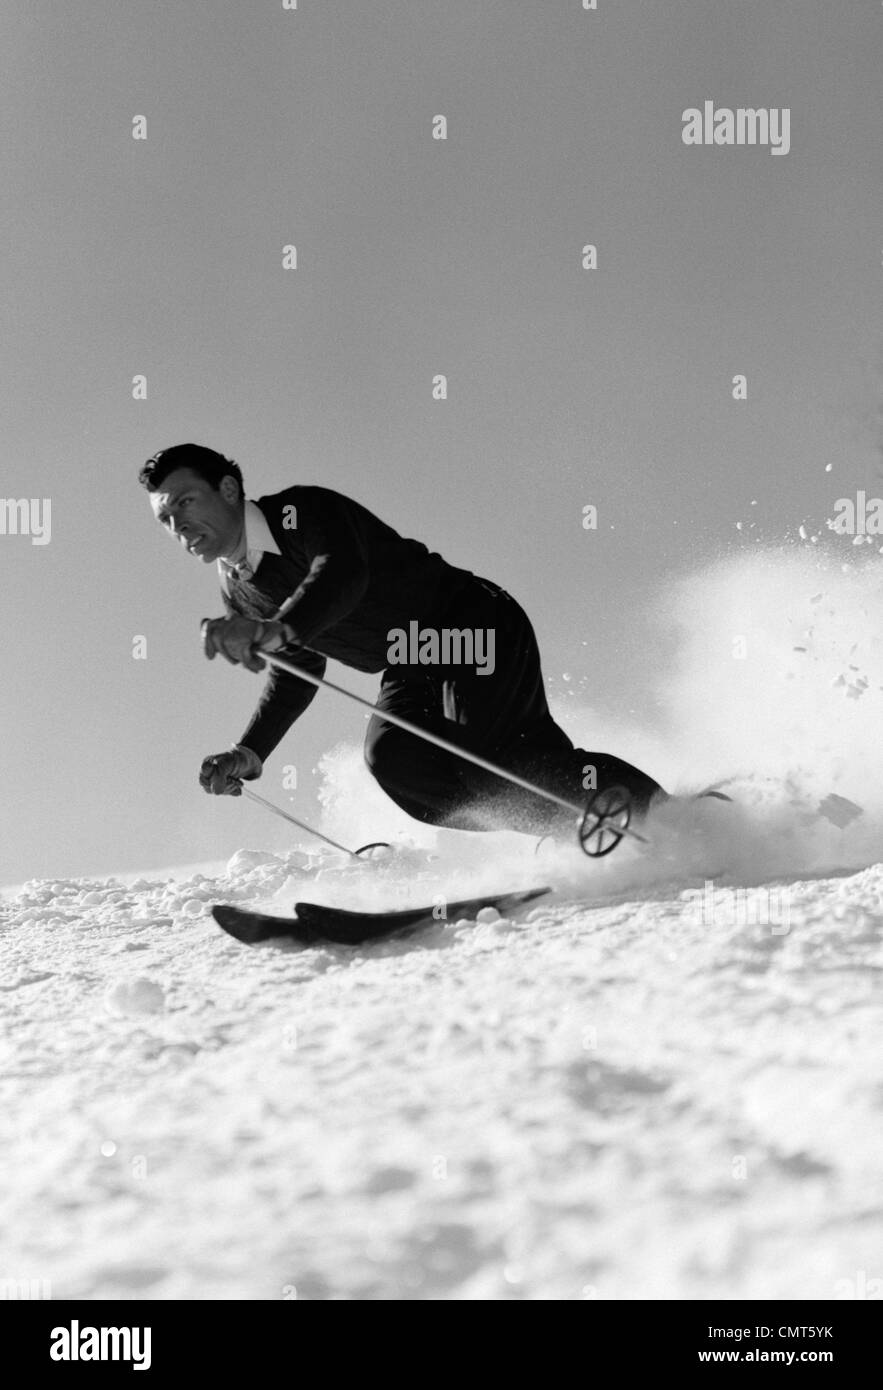 1940s MAN DOWNHILL SKIING WINTER OUTDOOR Stock Photo